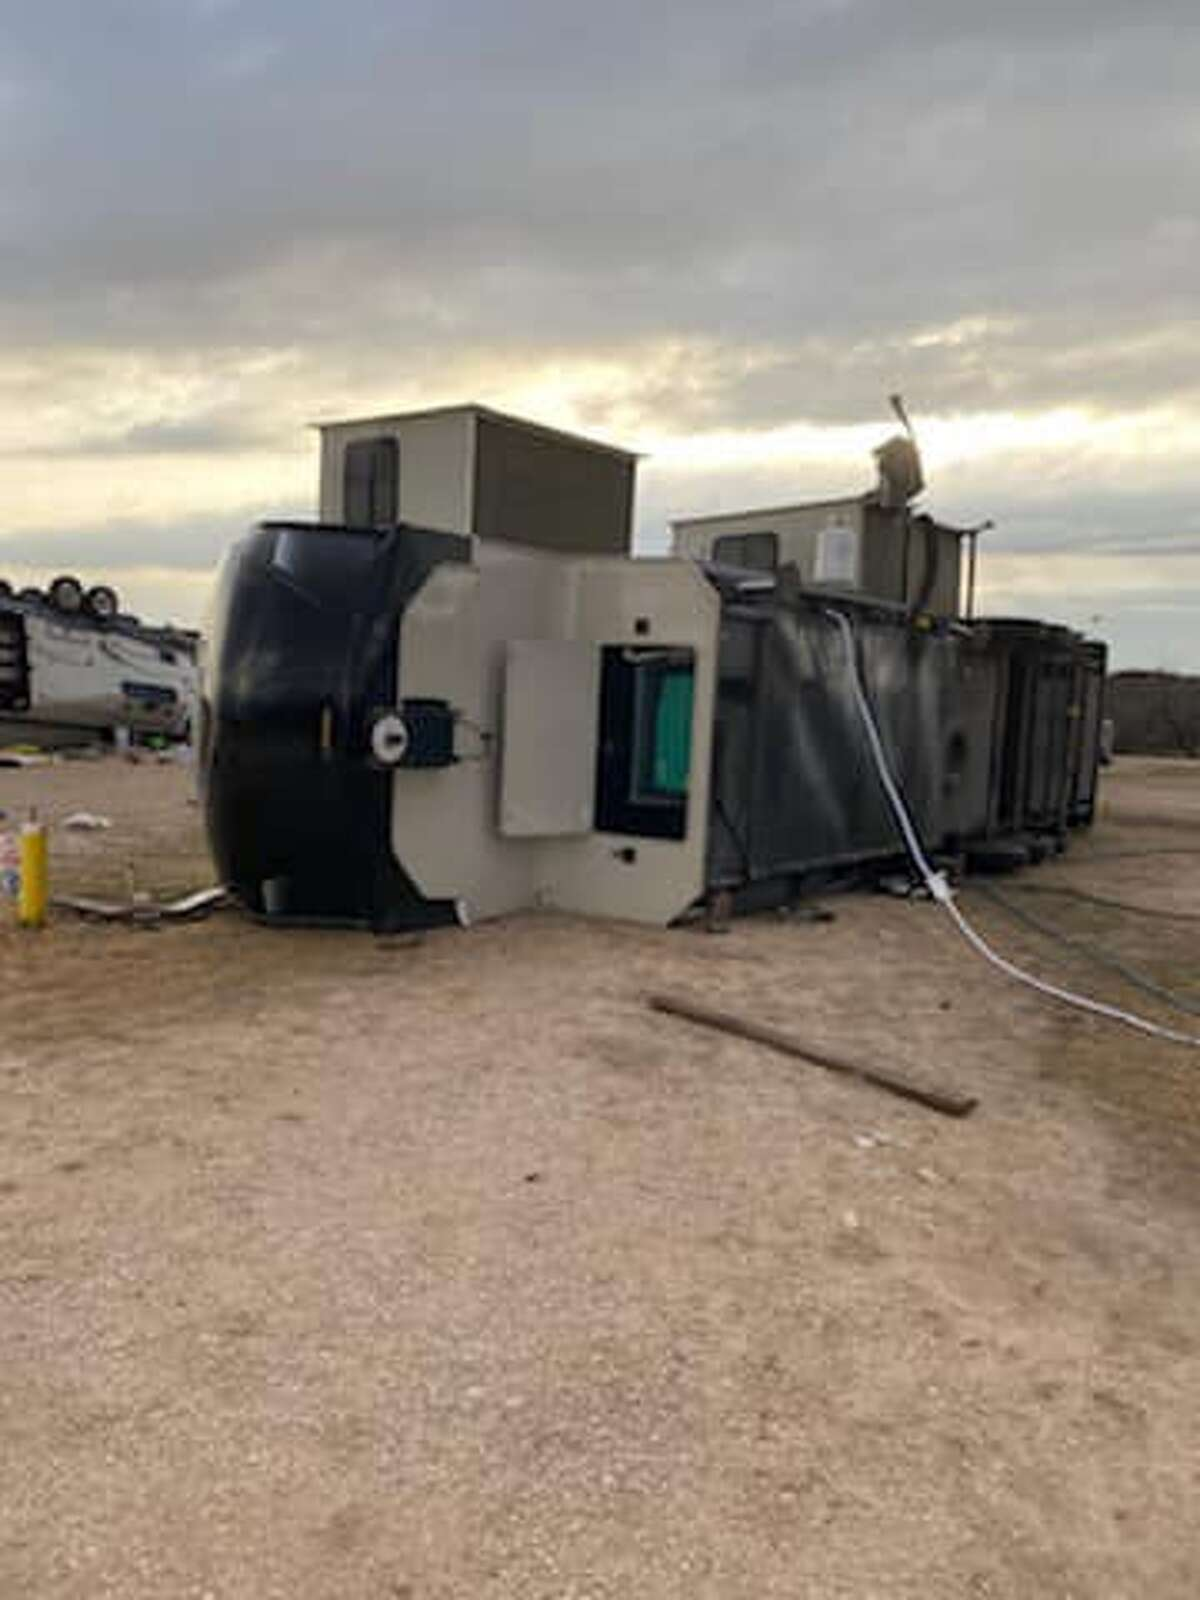 Pictured is damage at the Palo Duro Zip Line in Palo Duro Canyon State Park. No injuries were reported. Several families were camping there. However, most of them sought shelter in a storm shelter nearby.